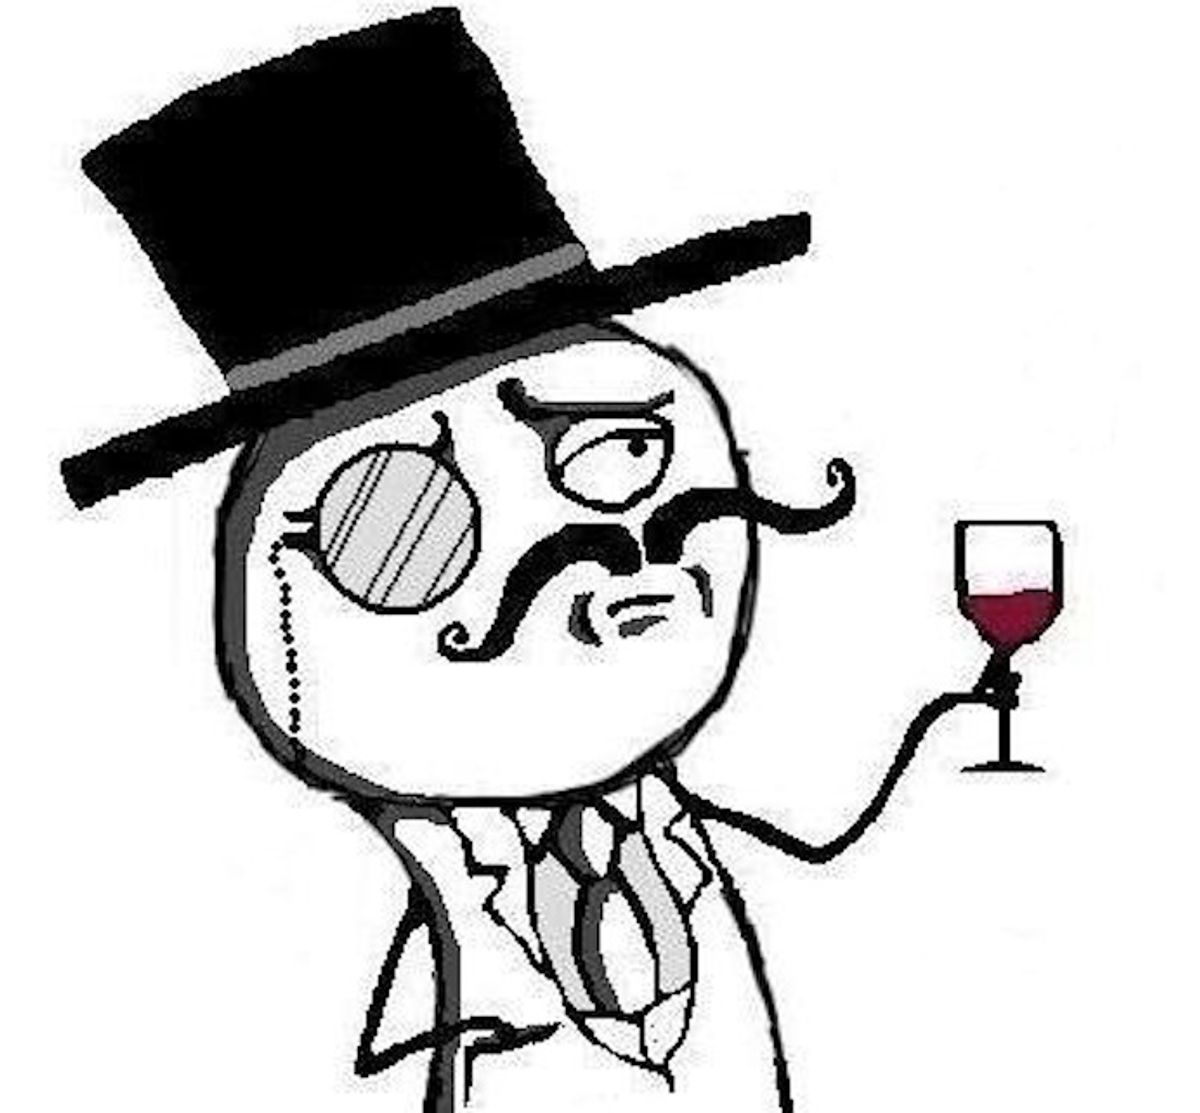 The LulzSec symbol, used on their extensively followed Twitter feed